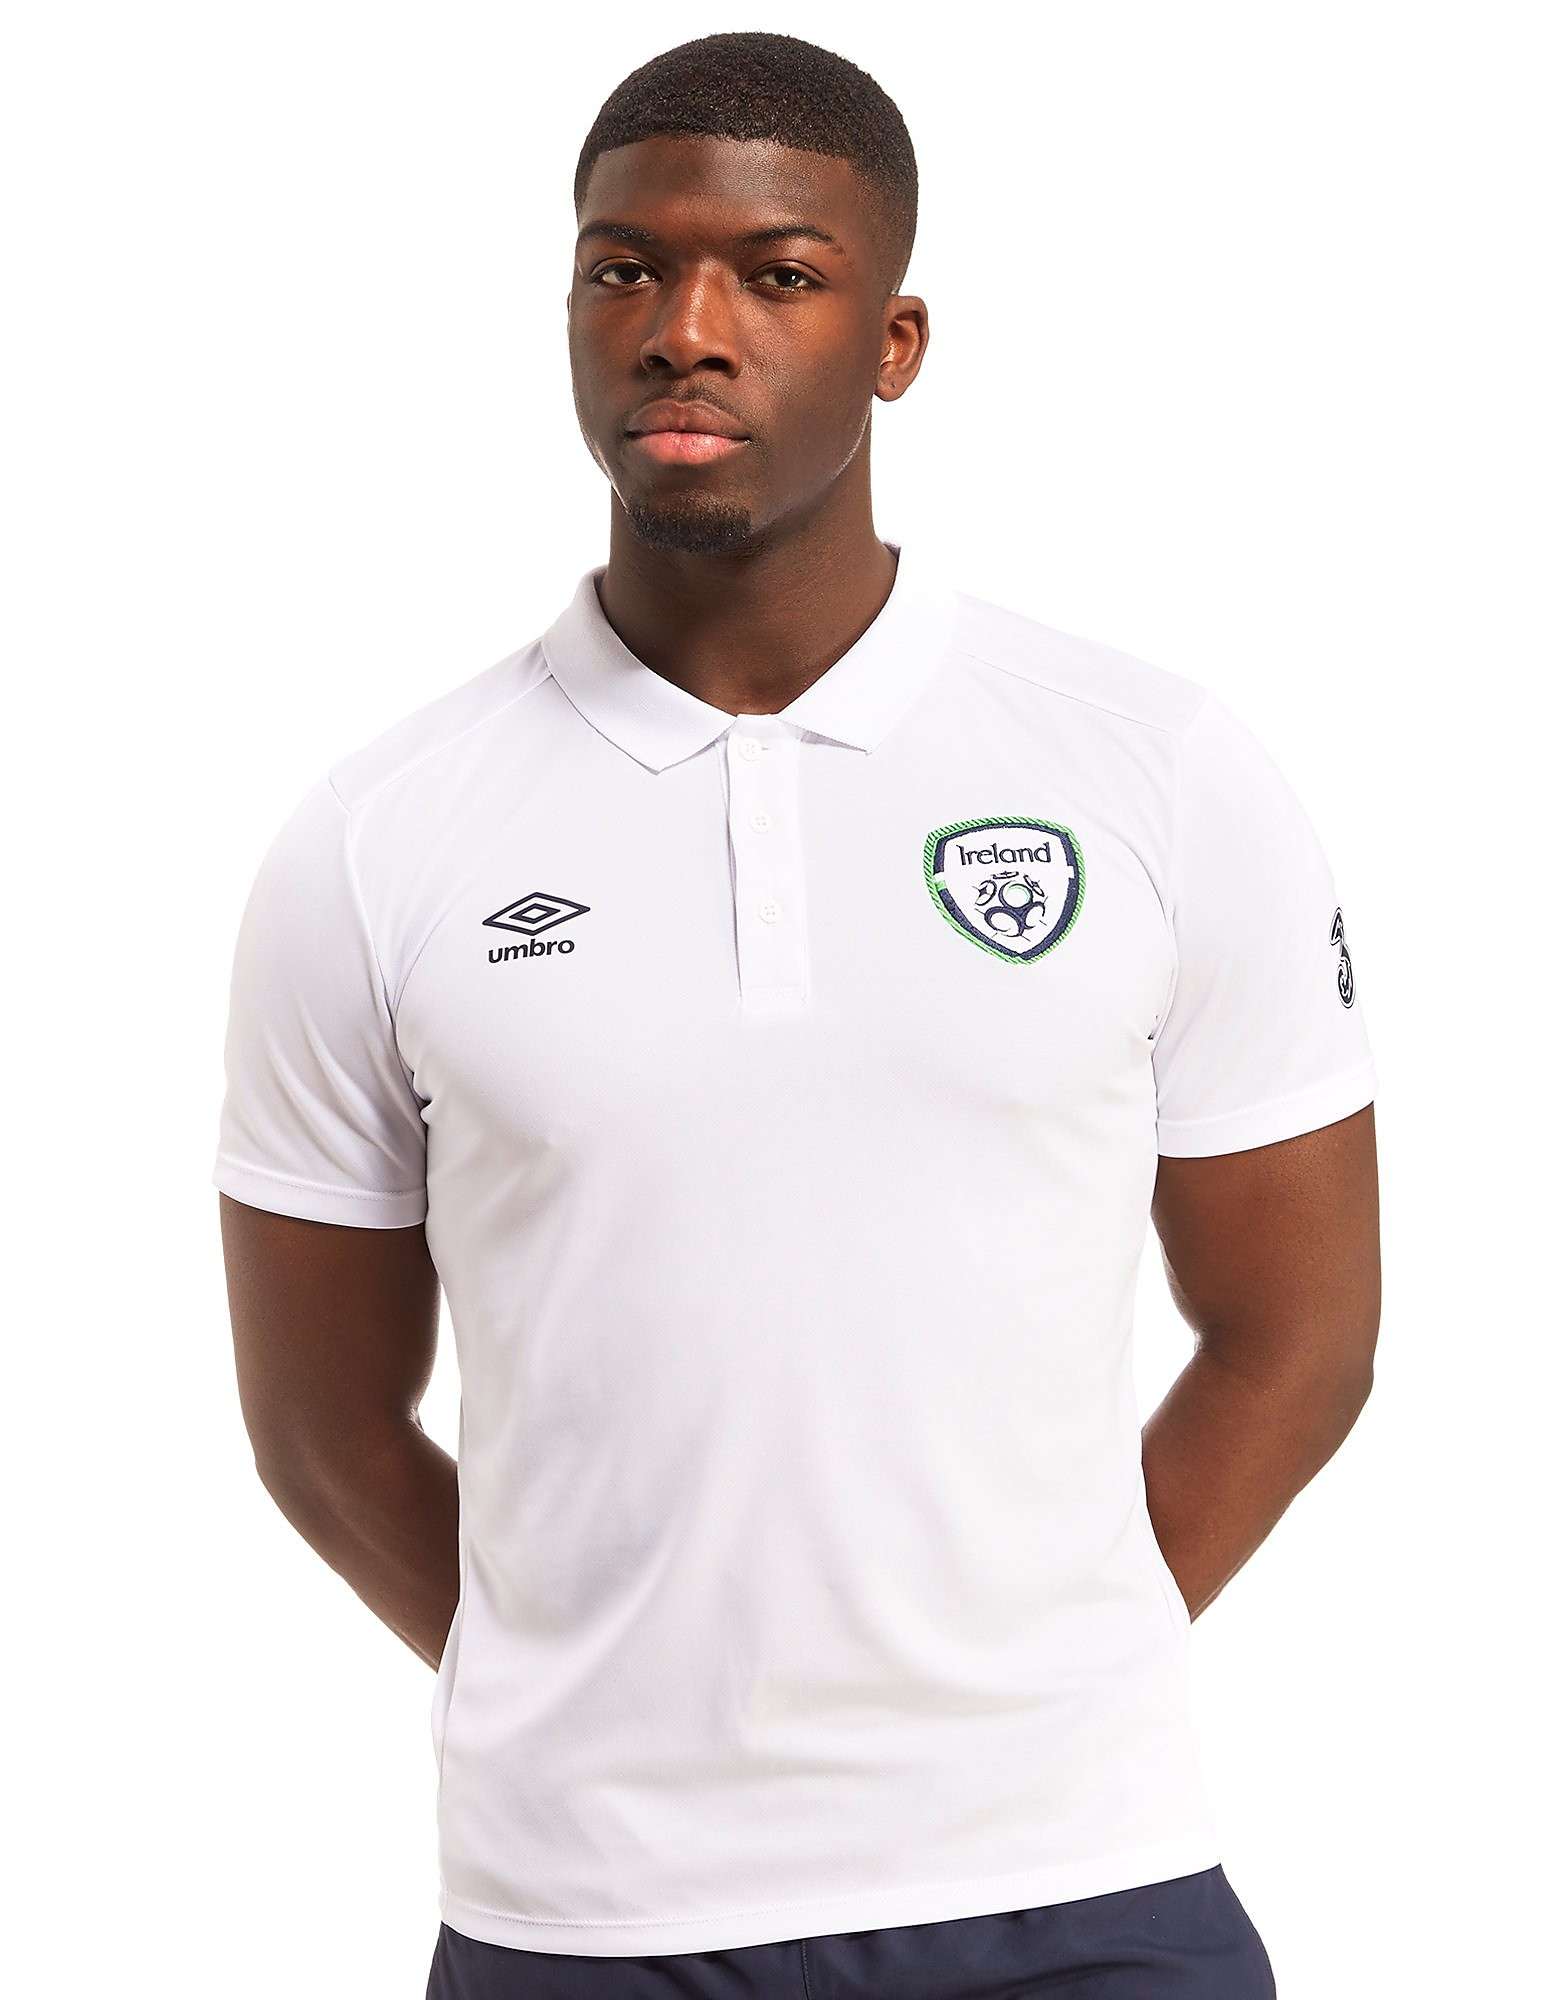 Umbro Republic of Ireland pikétröja